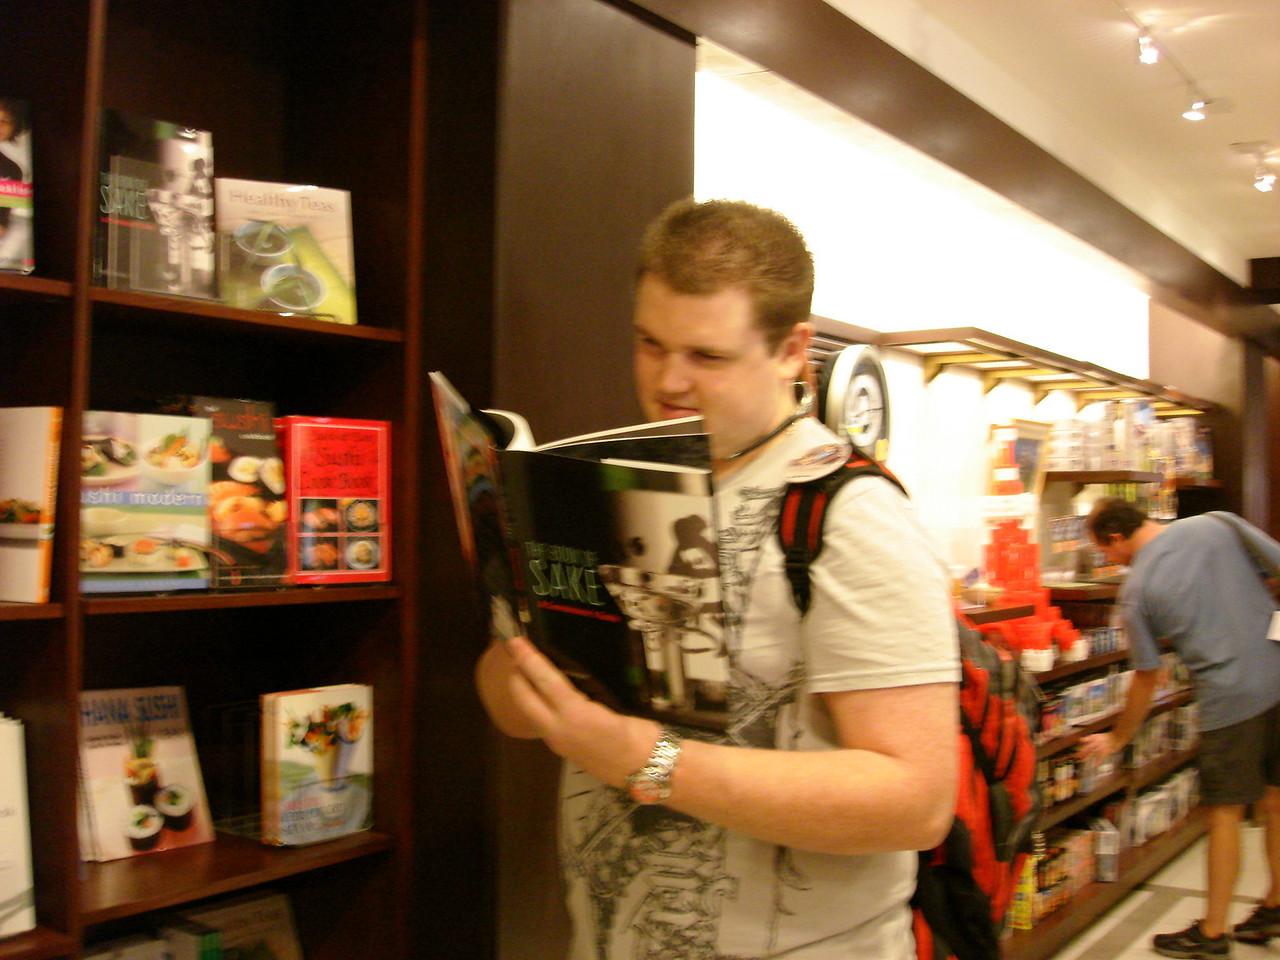 Oh look, he found him a book on ....Sake!!